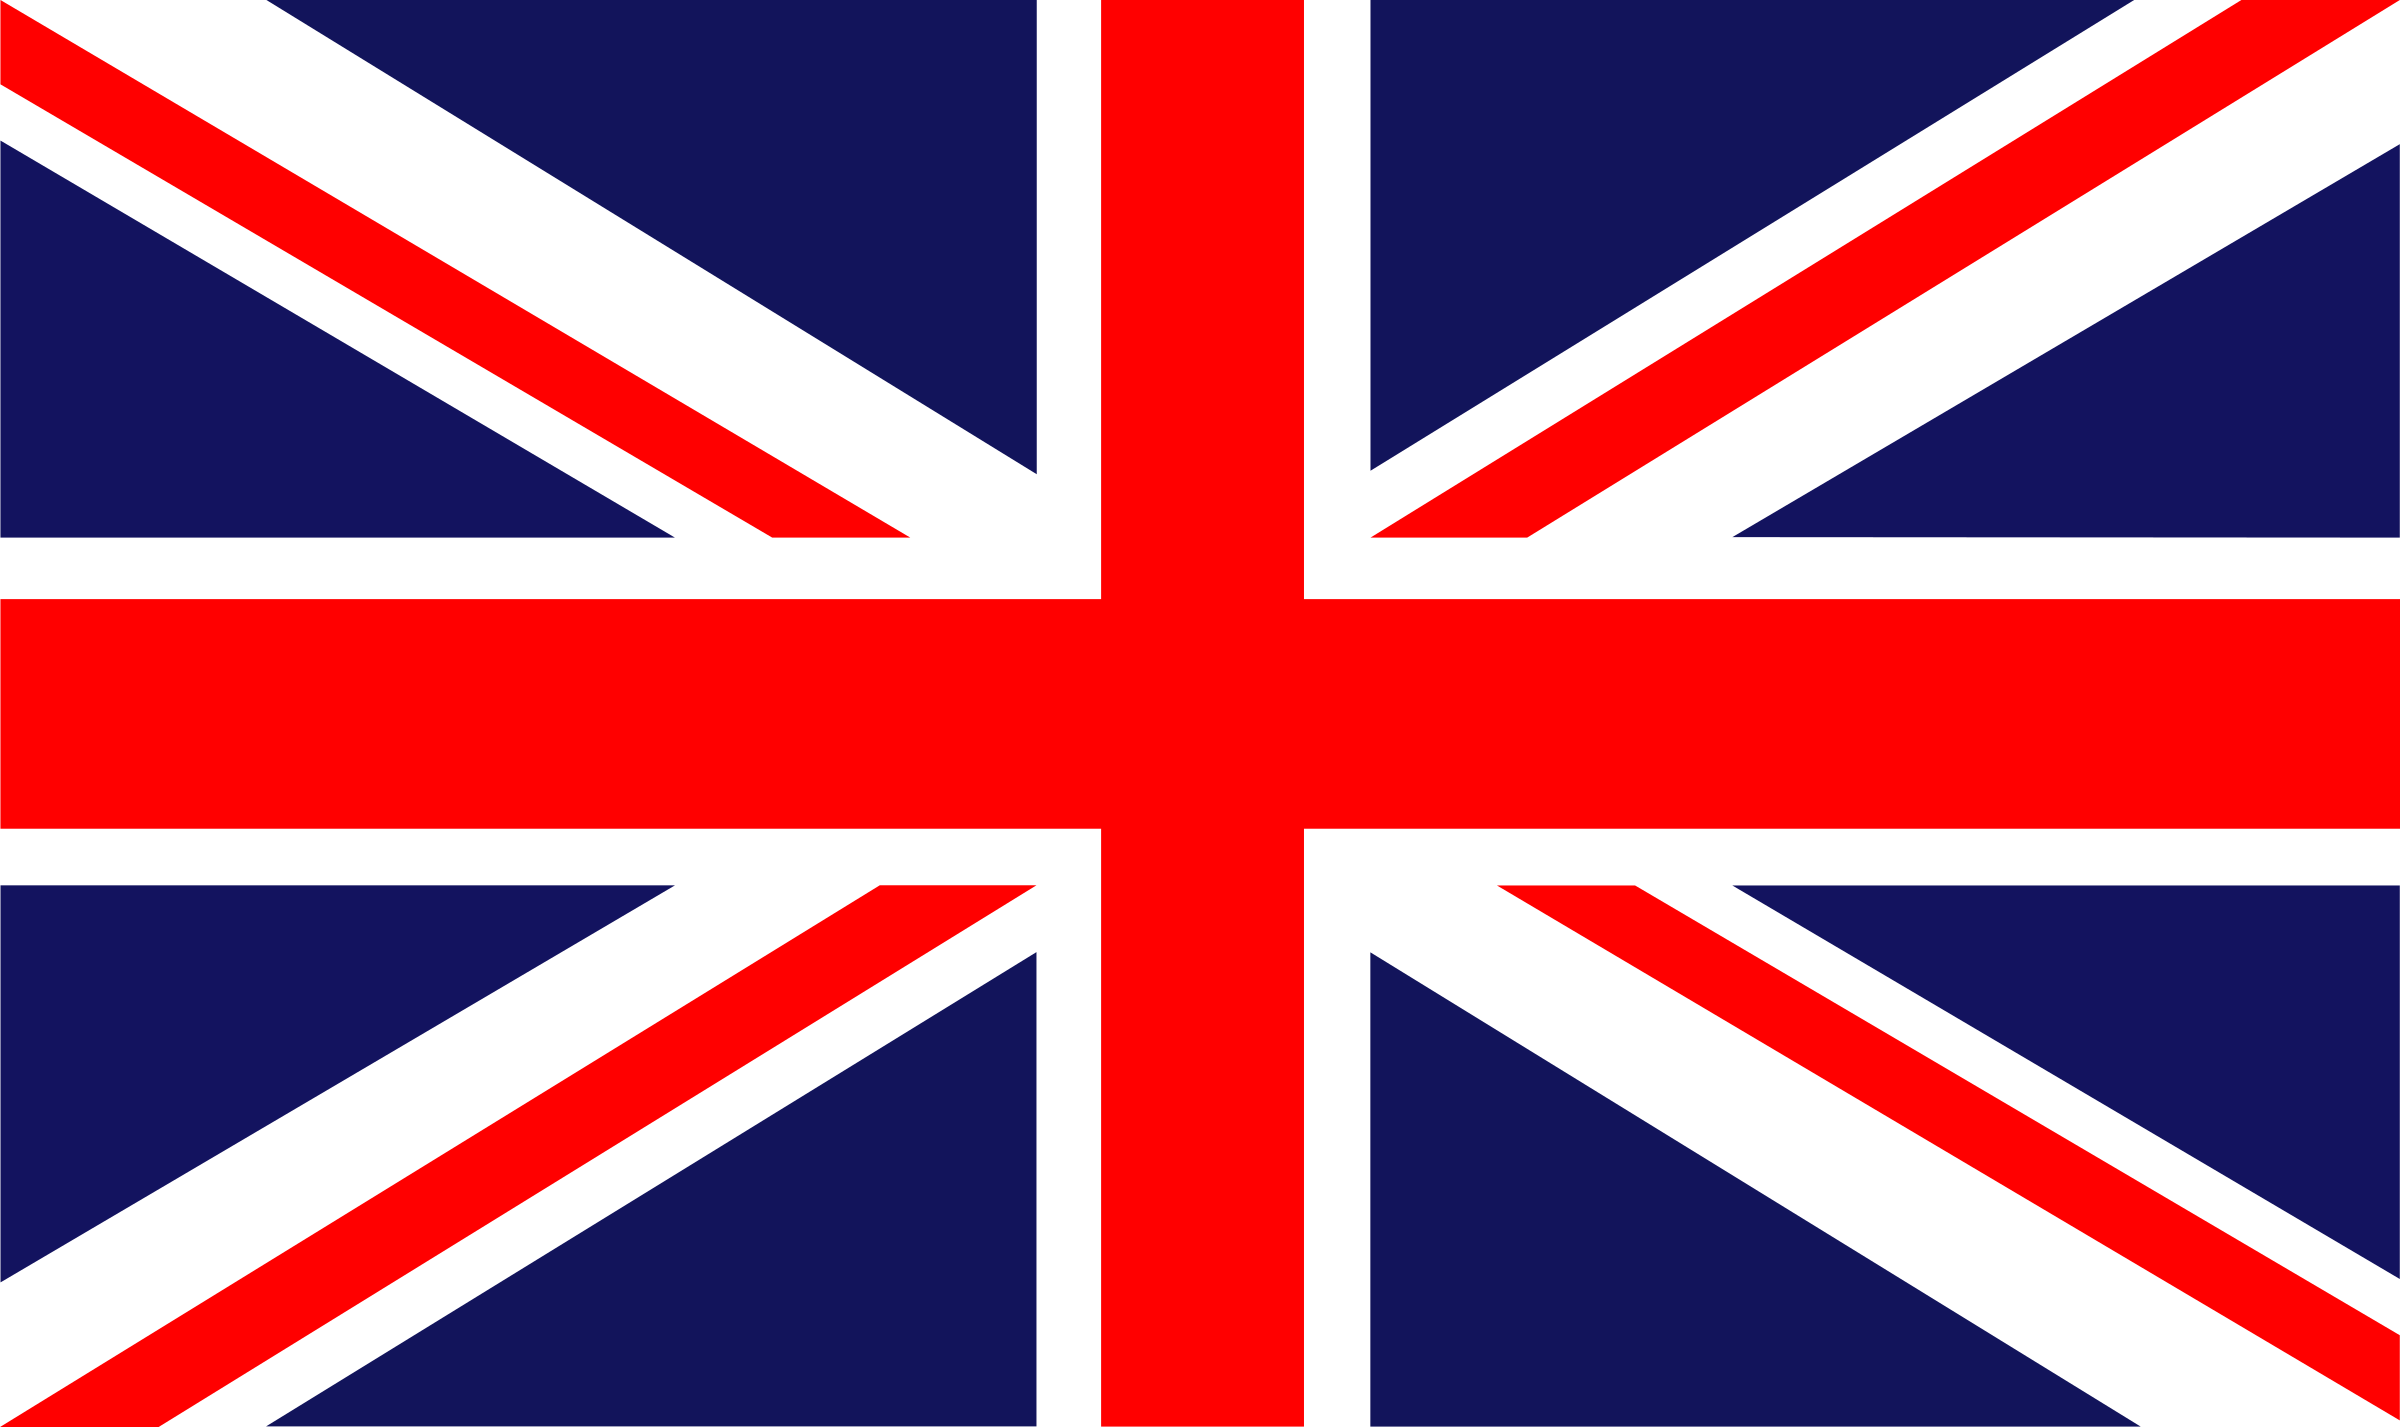 british rule in england The very idea of the british raj—the british rule over india—seems inexplicable today consider the fact that indian written history stretches back almost 4,000 years, to the civilization centers of the indus valley culture at harappa and mohenjo-daro also, by 1850, india had a population of at.